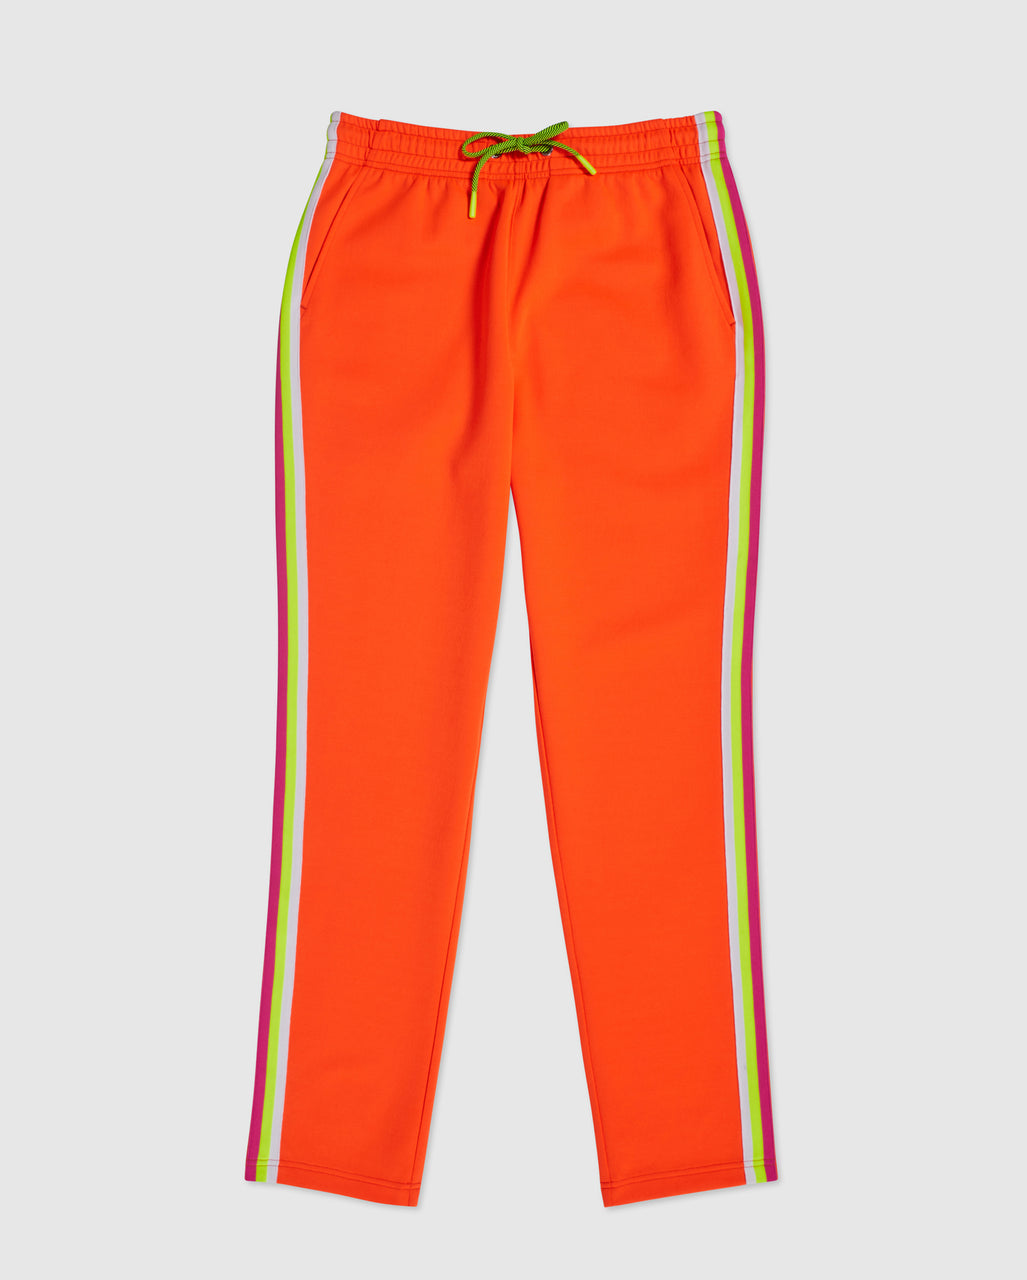 Psycho Bunny Men's Abbott Sweat Pants - Neon Flame